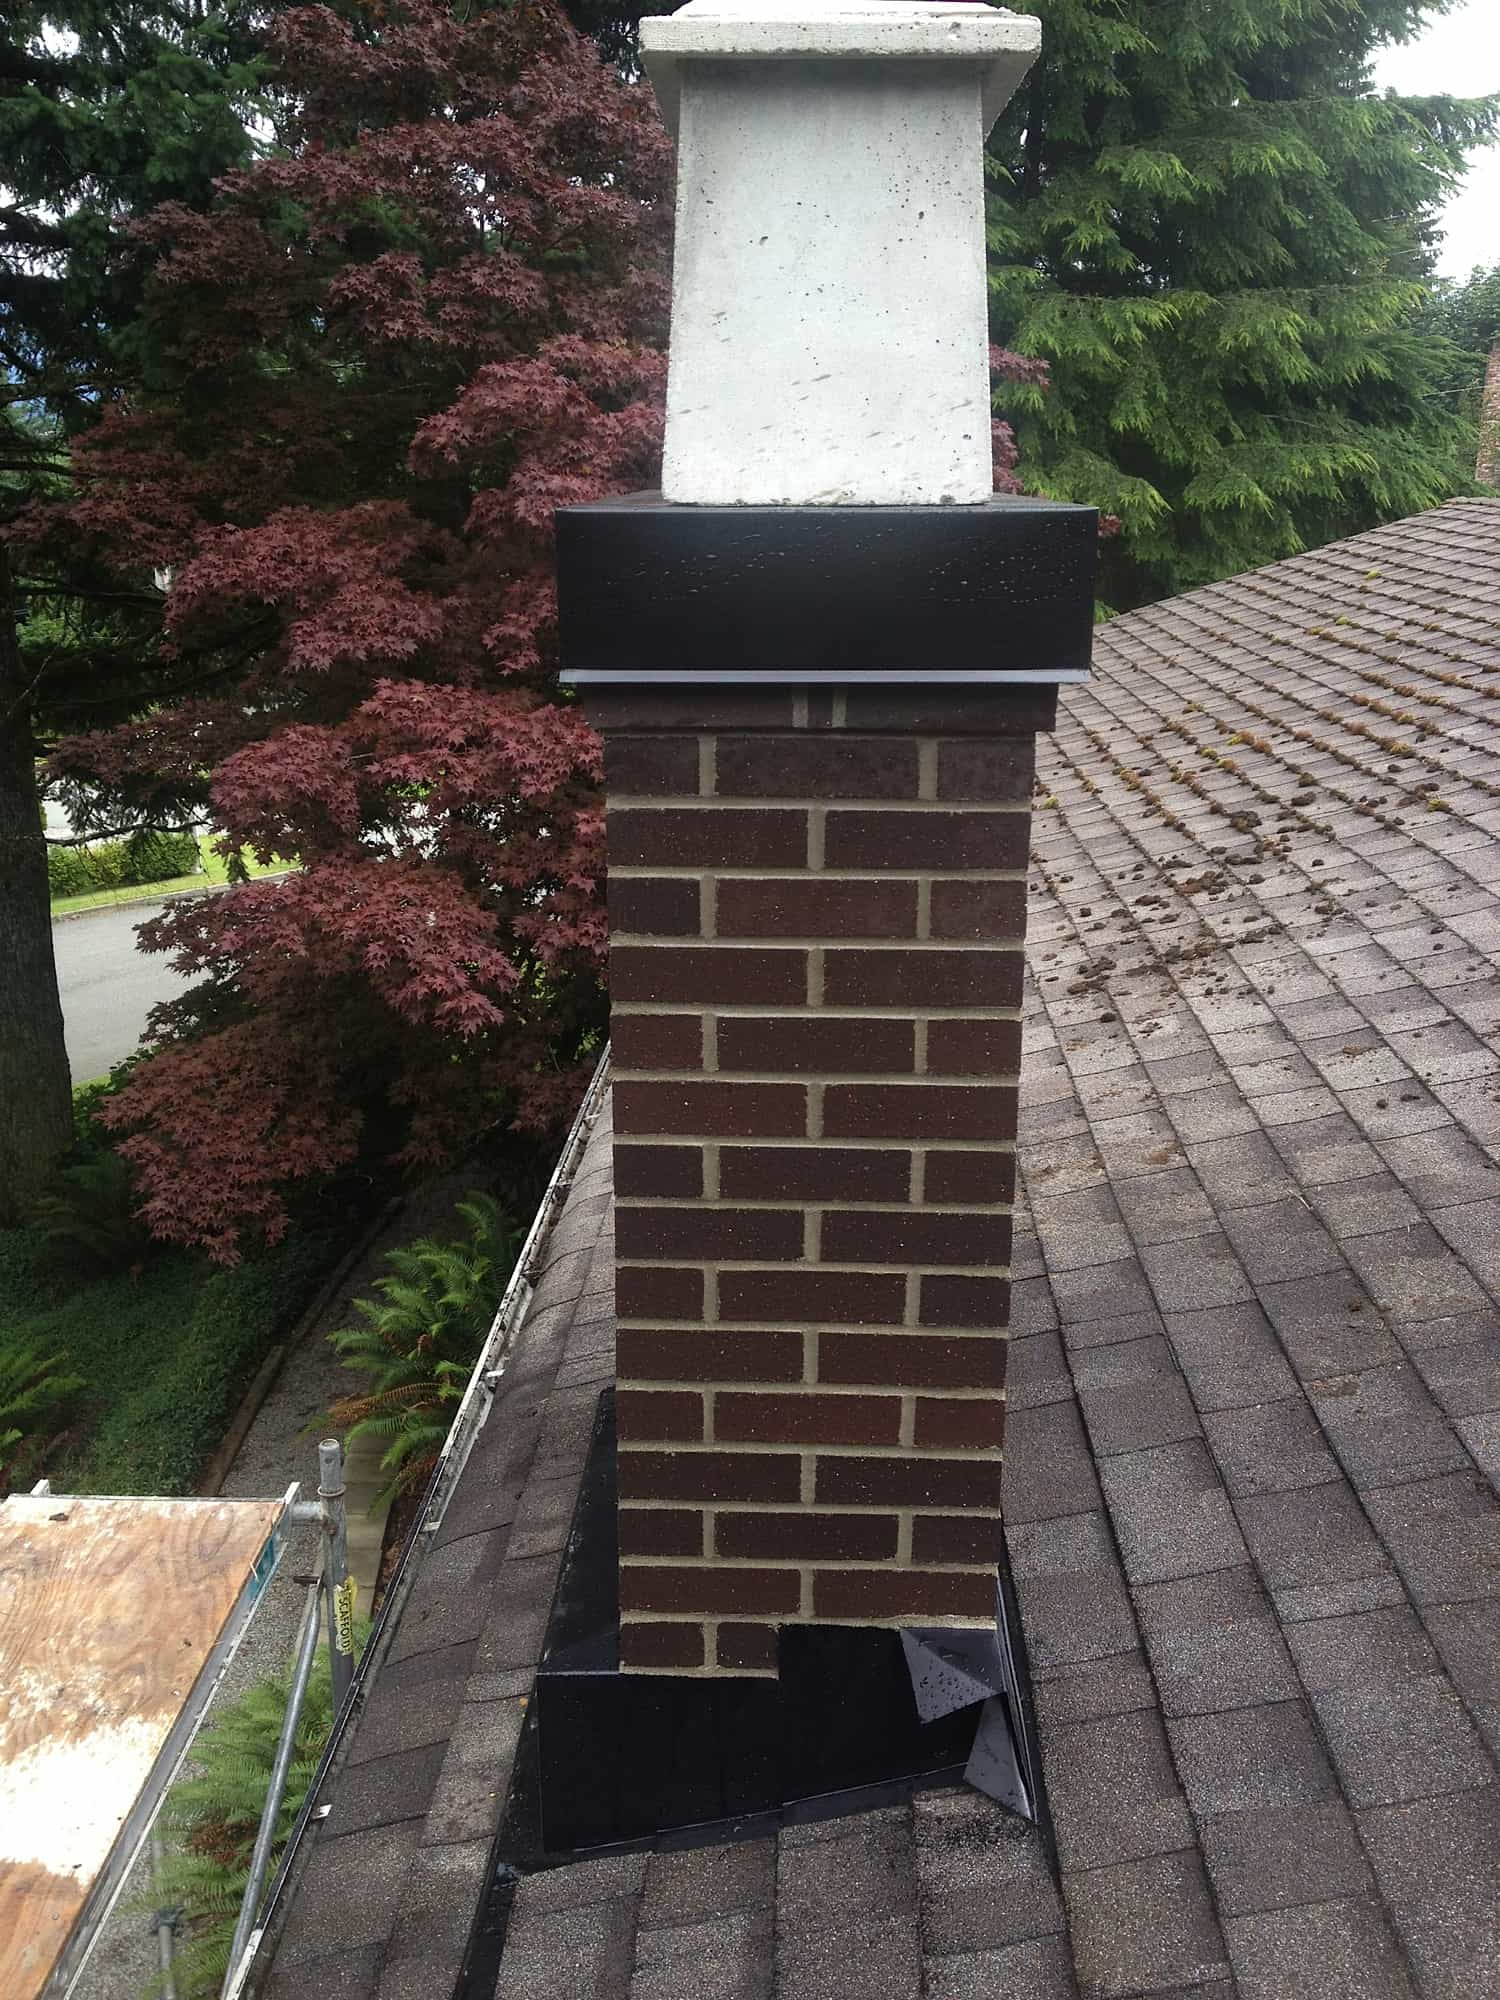 Rebuilt Chimney in Coquitlam BC